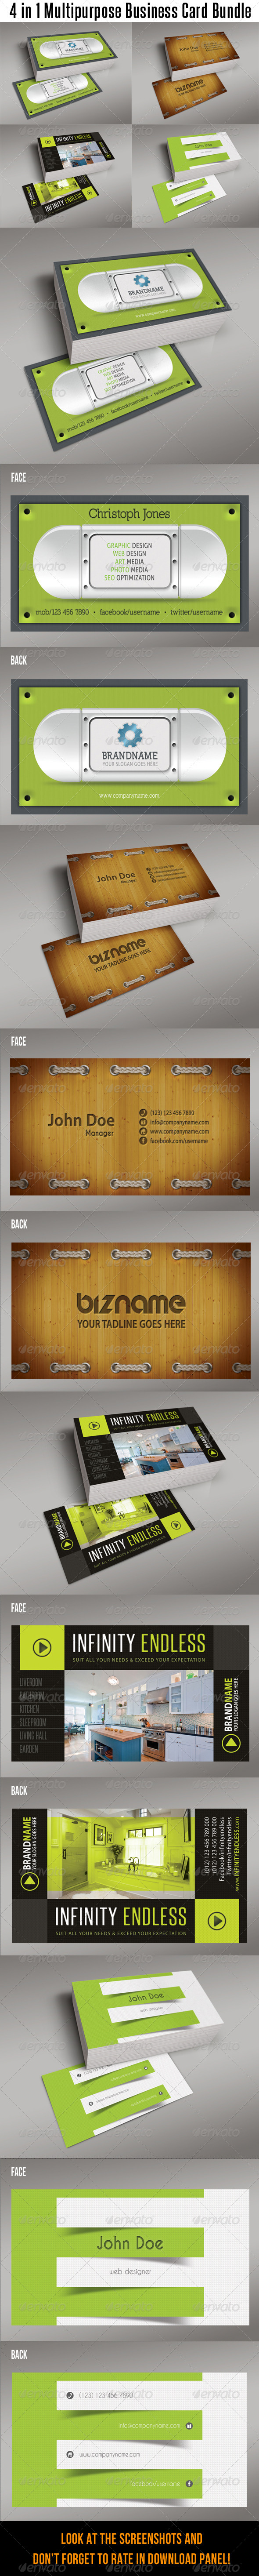 GraphicRiver 4 in 1 Multipurpose Business Card Bundle 01 7740856